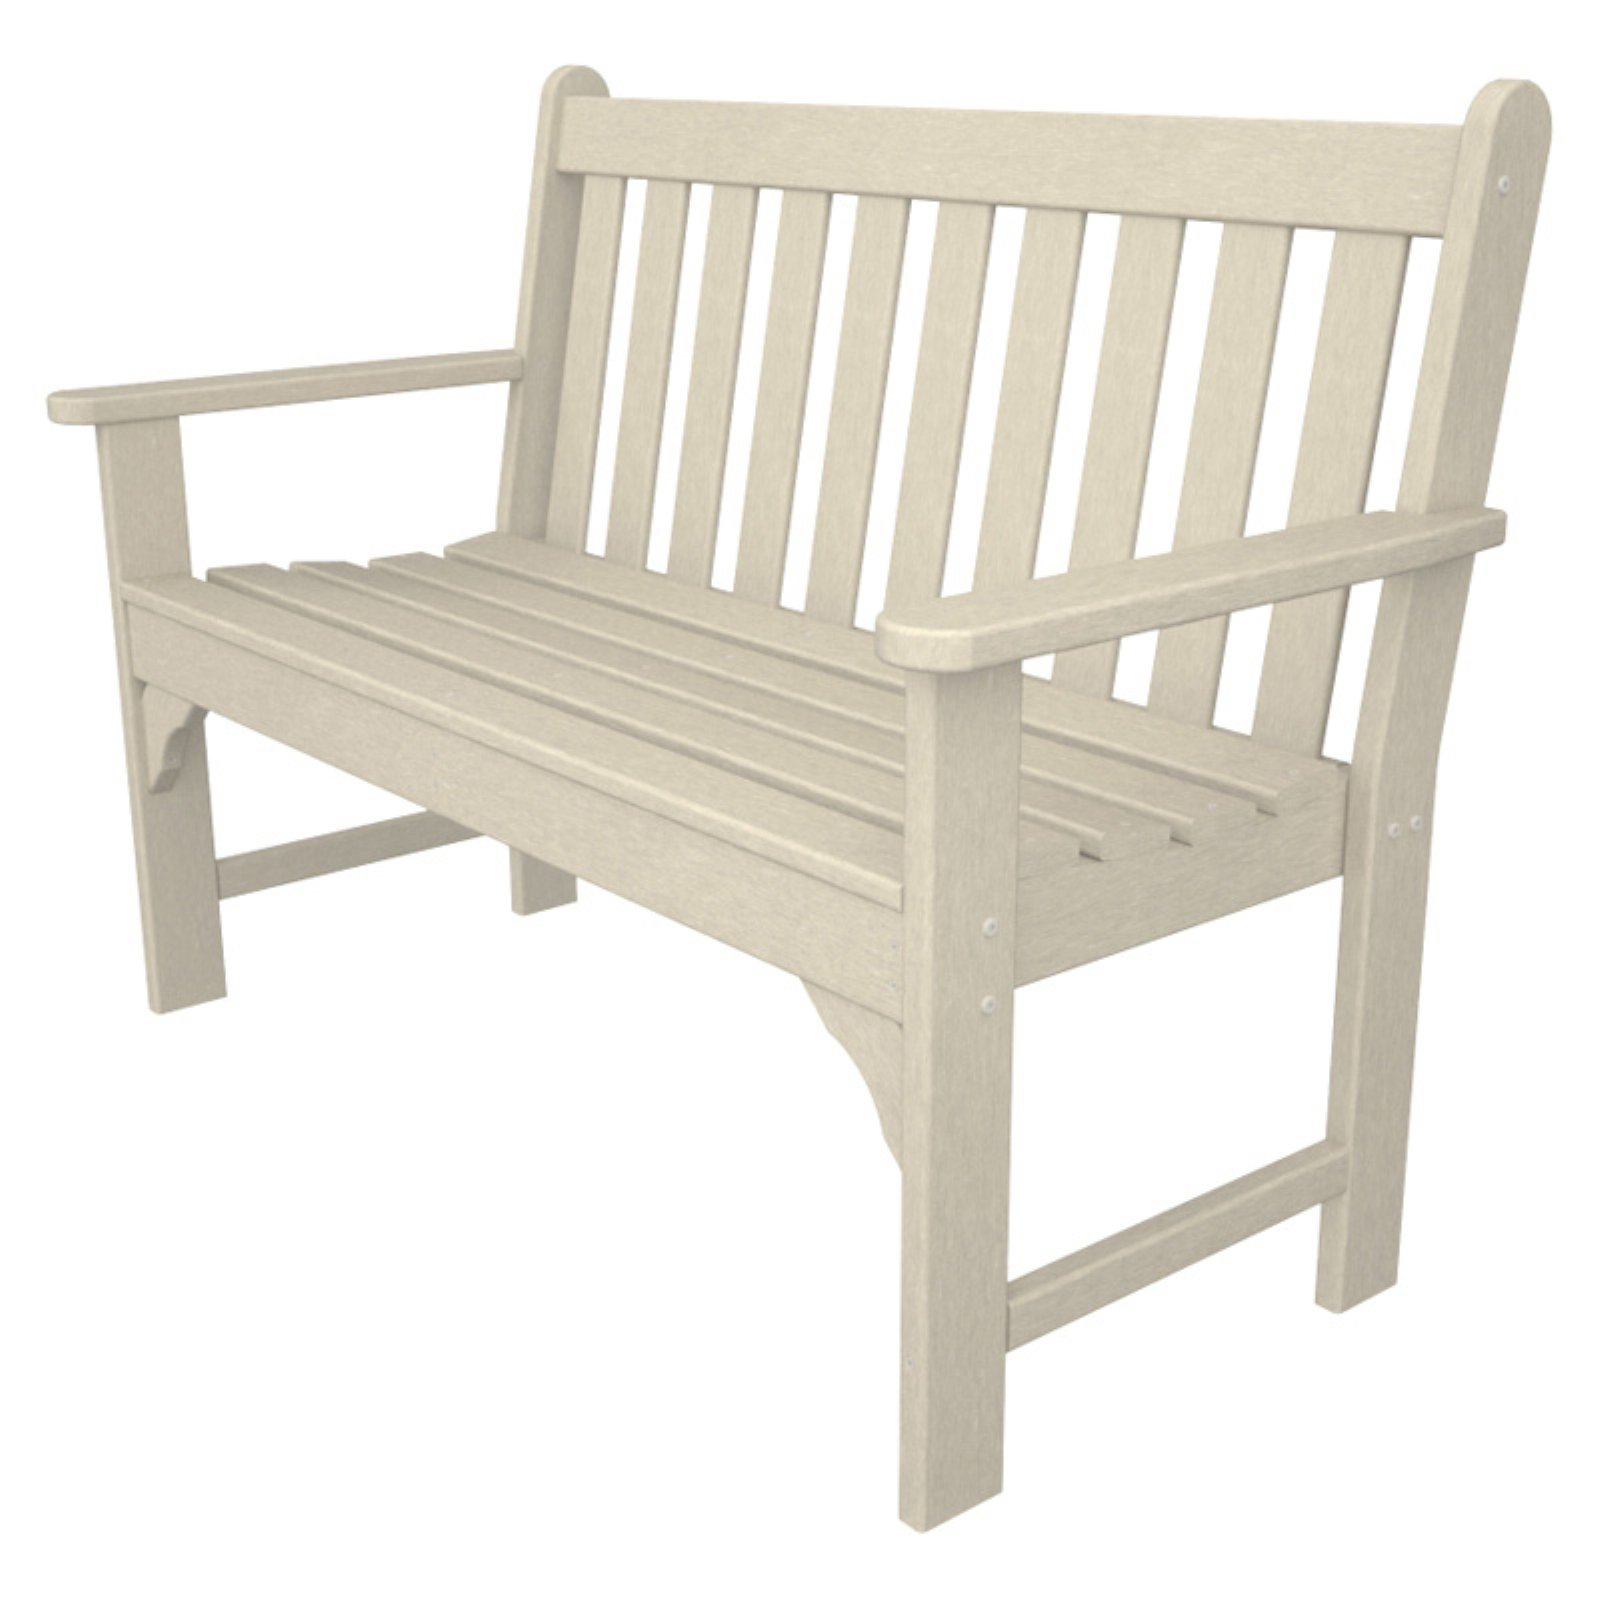 POLYWOOD Vineyard Recycled Plastic Garden Bench by Polywood